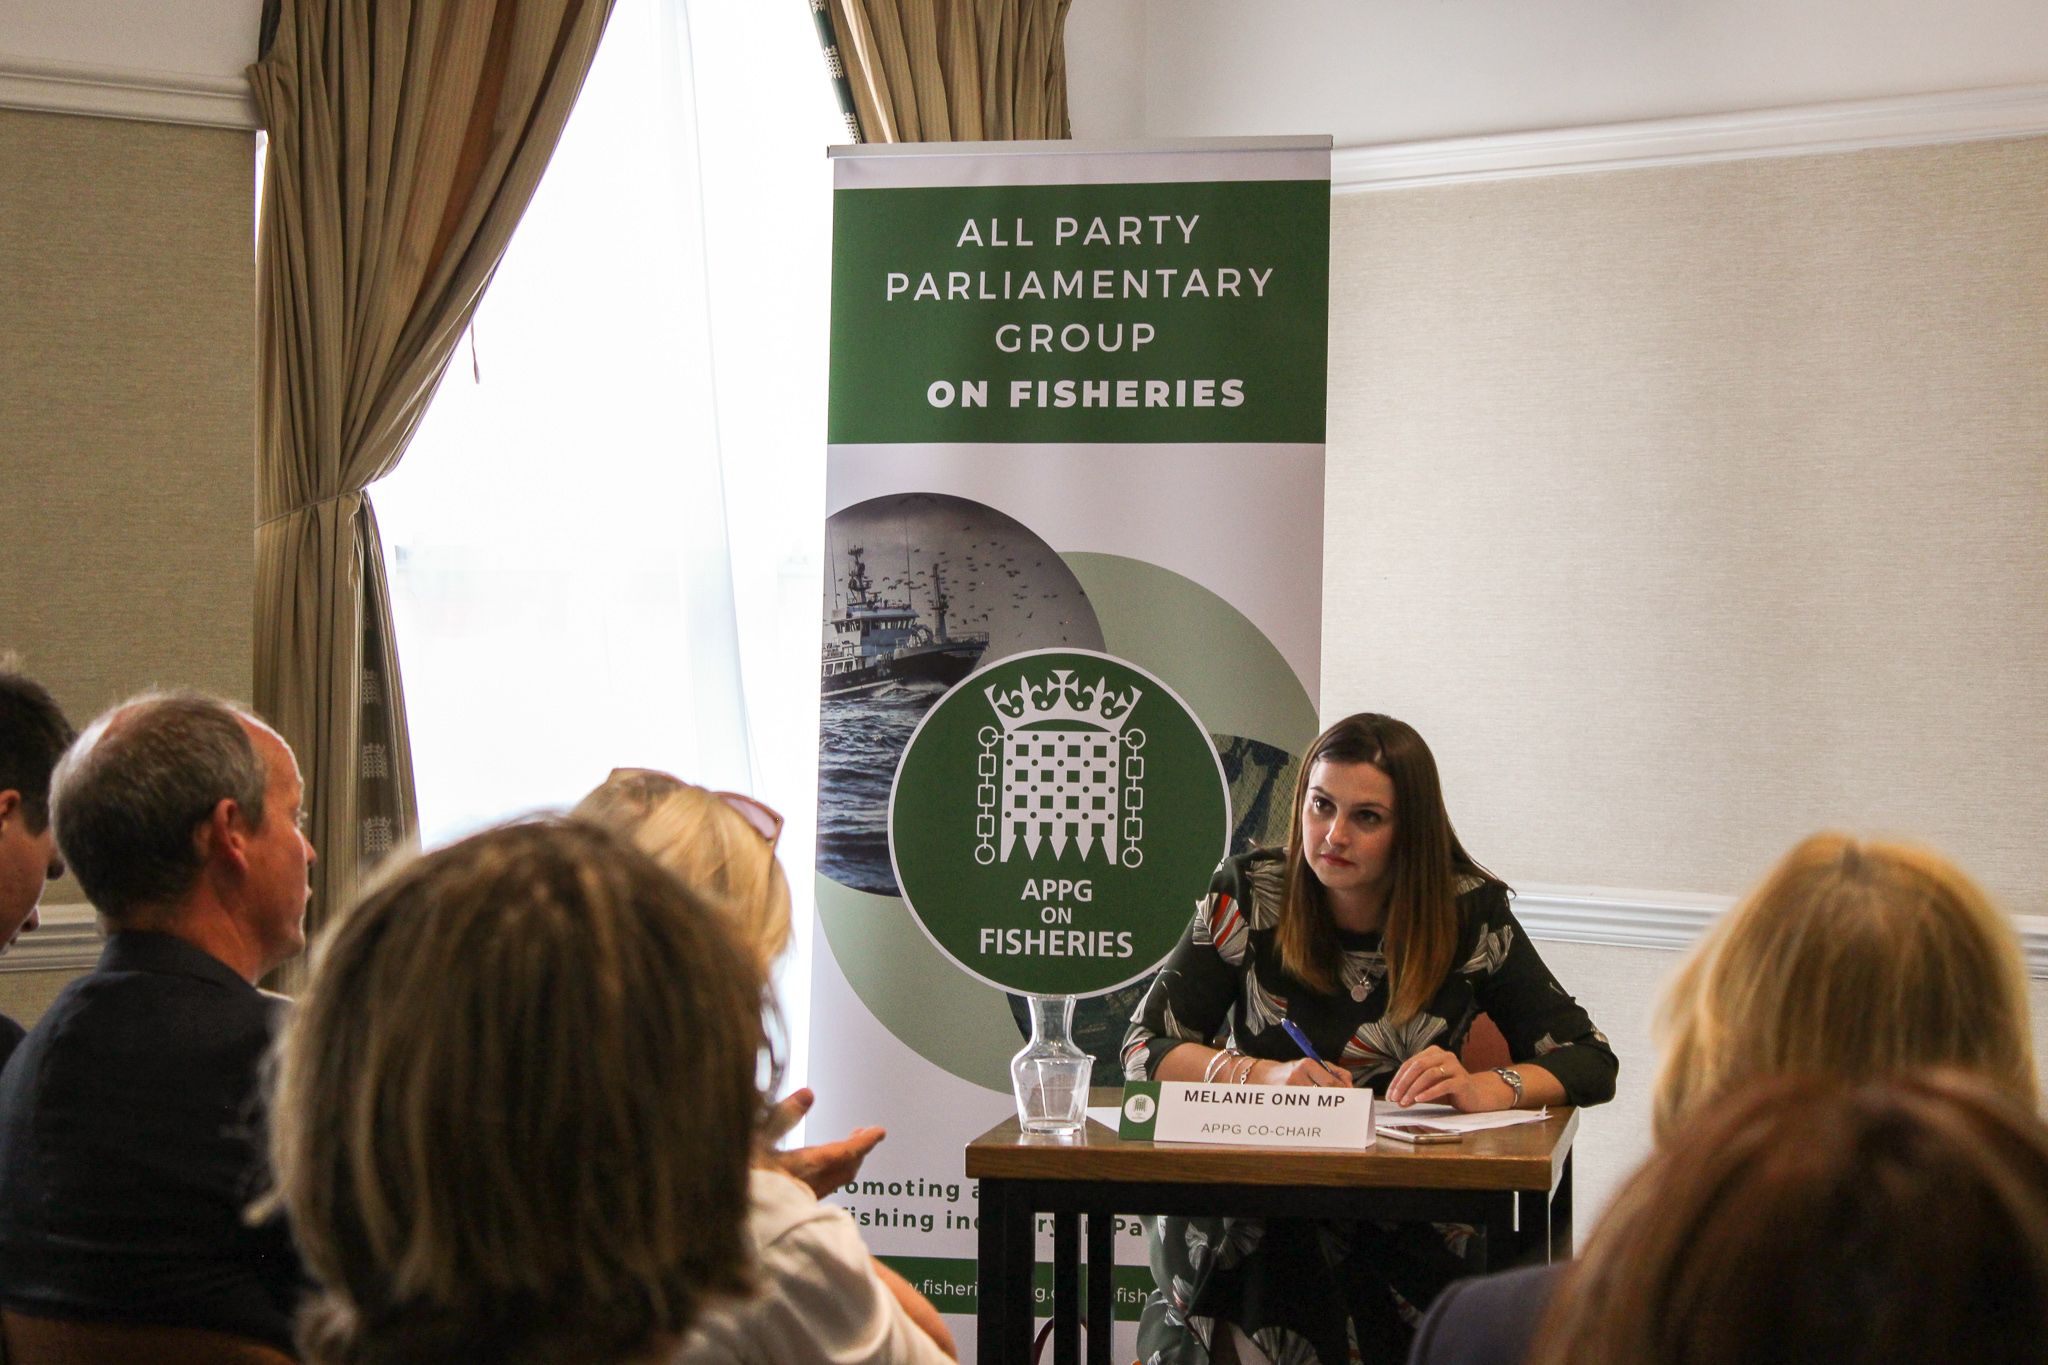 APPG on Fisheries Co-Chair, Melanie Onn MP in action.